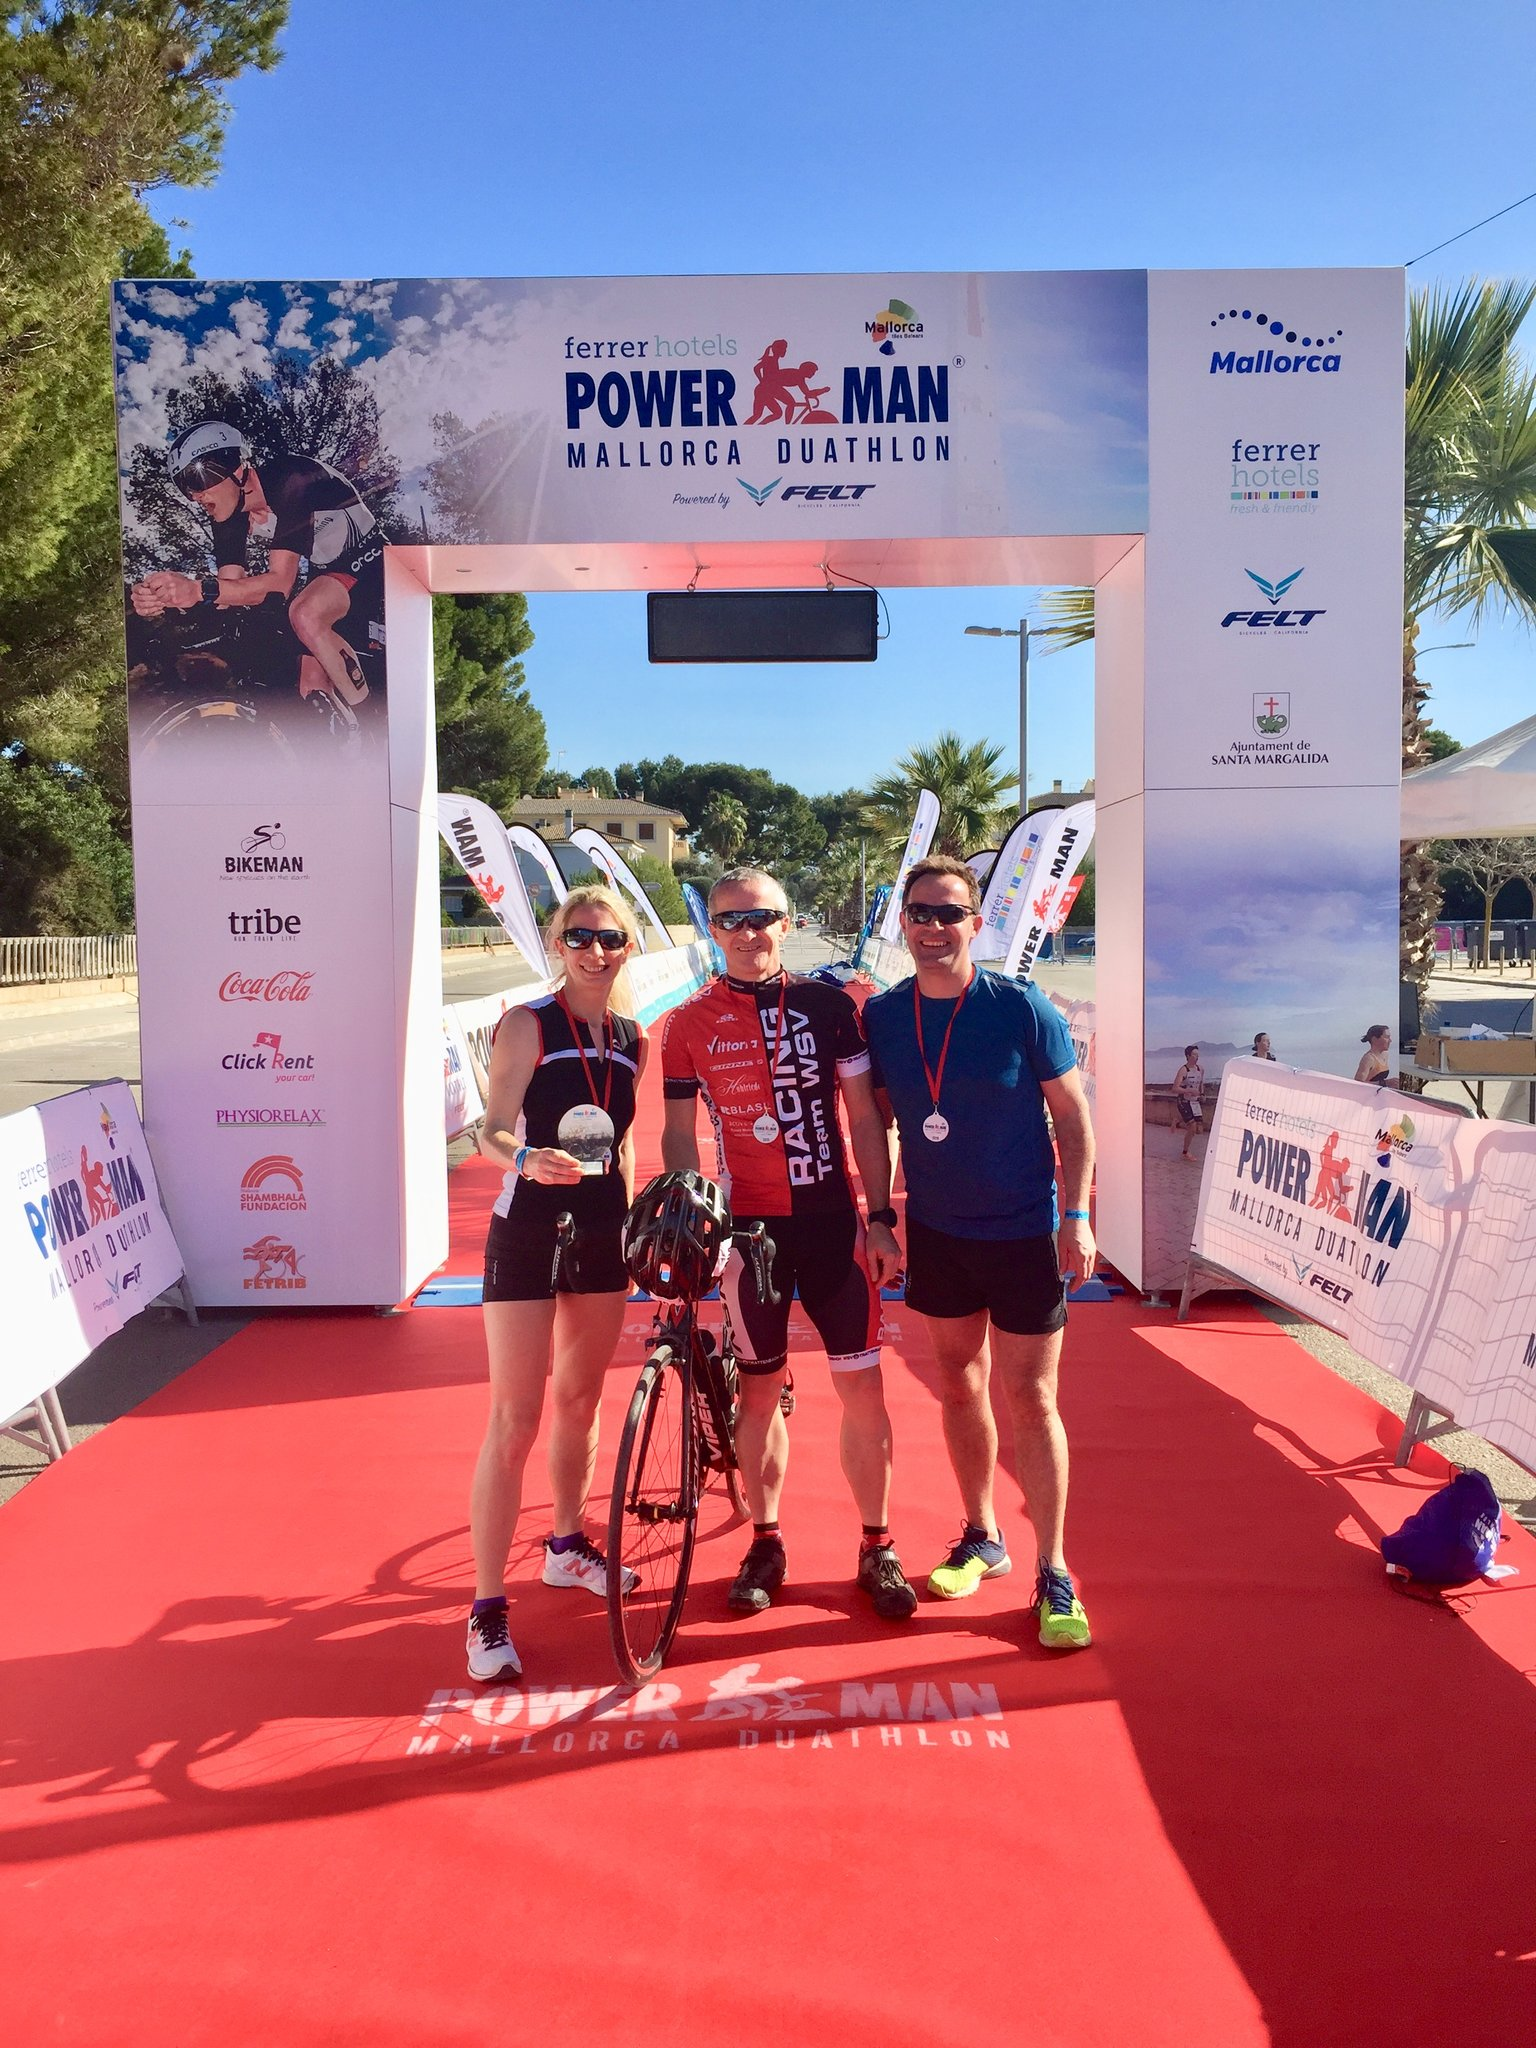 3. Platz Powerman Mallorca